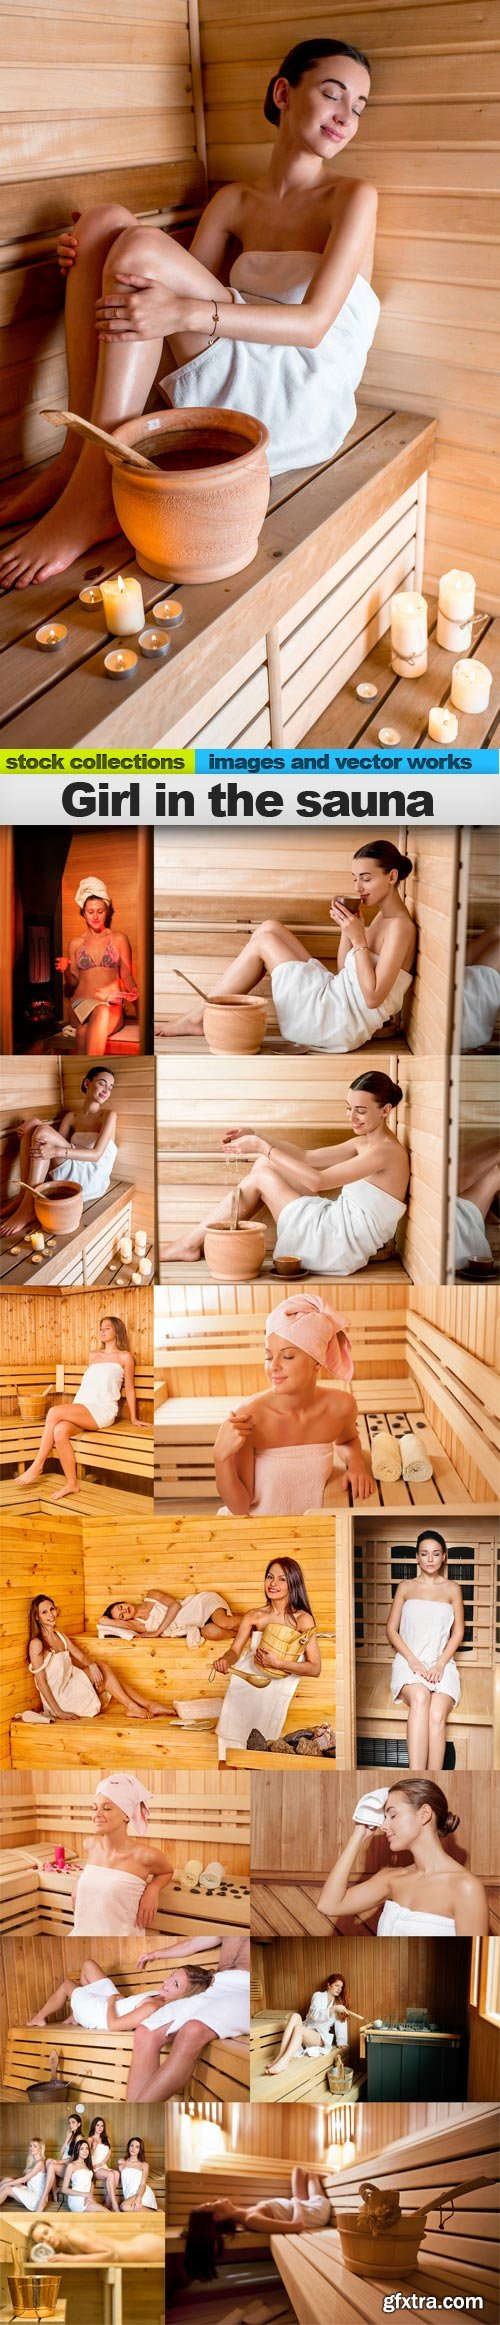 Girl in the sauna, 15 x UHQ JPEG